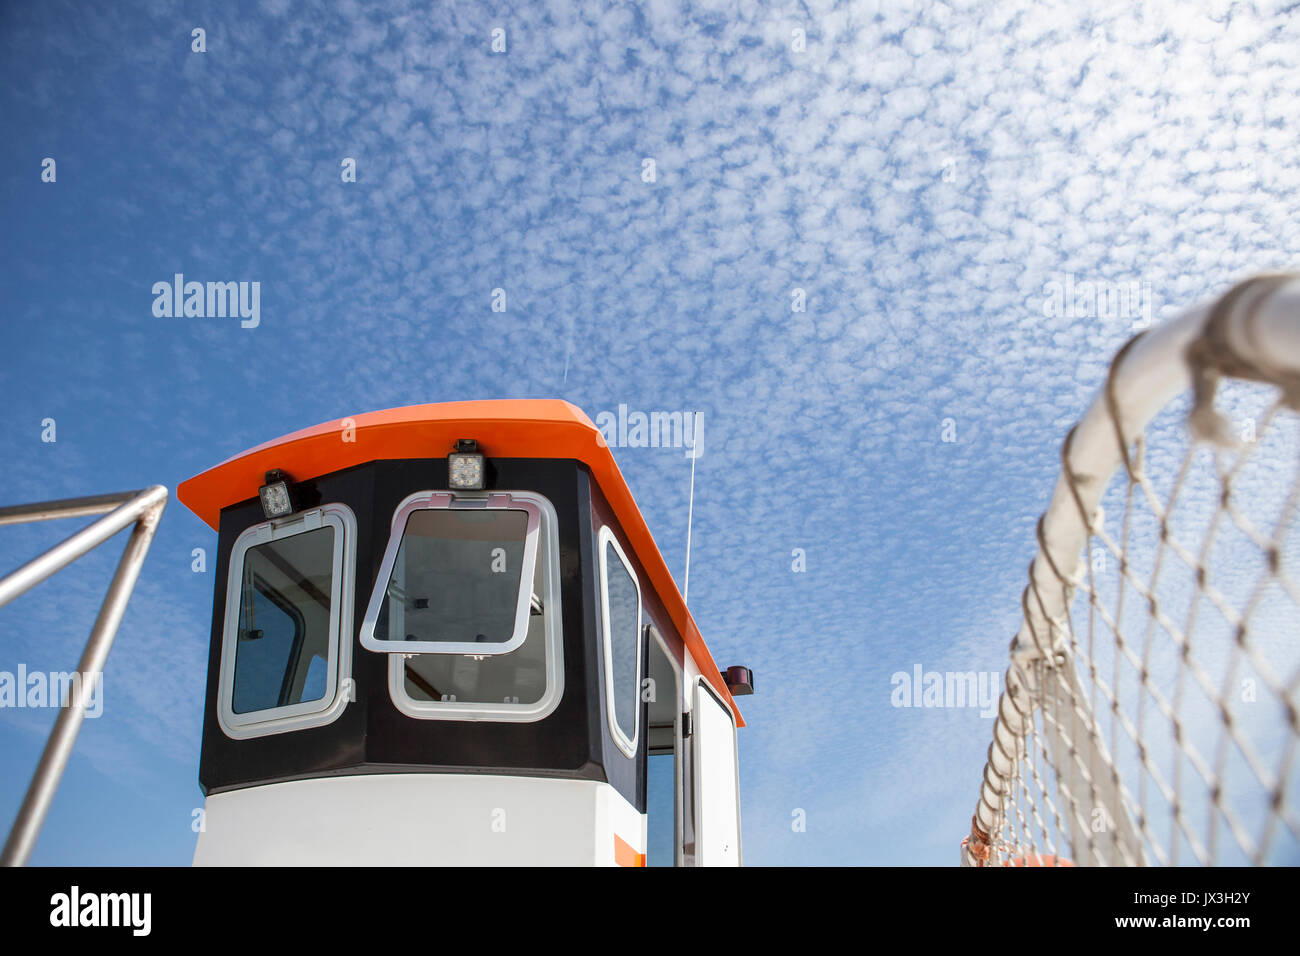 Ferry cockpit with cloud formations in the sky called Altocumulus floccus, El Rompido Cartaya, Huelva, Spain - Stock Image